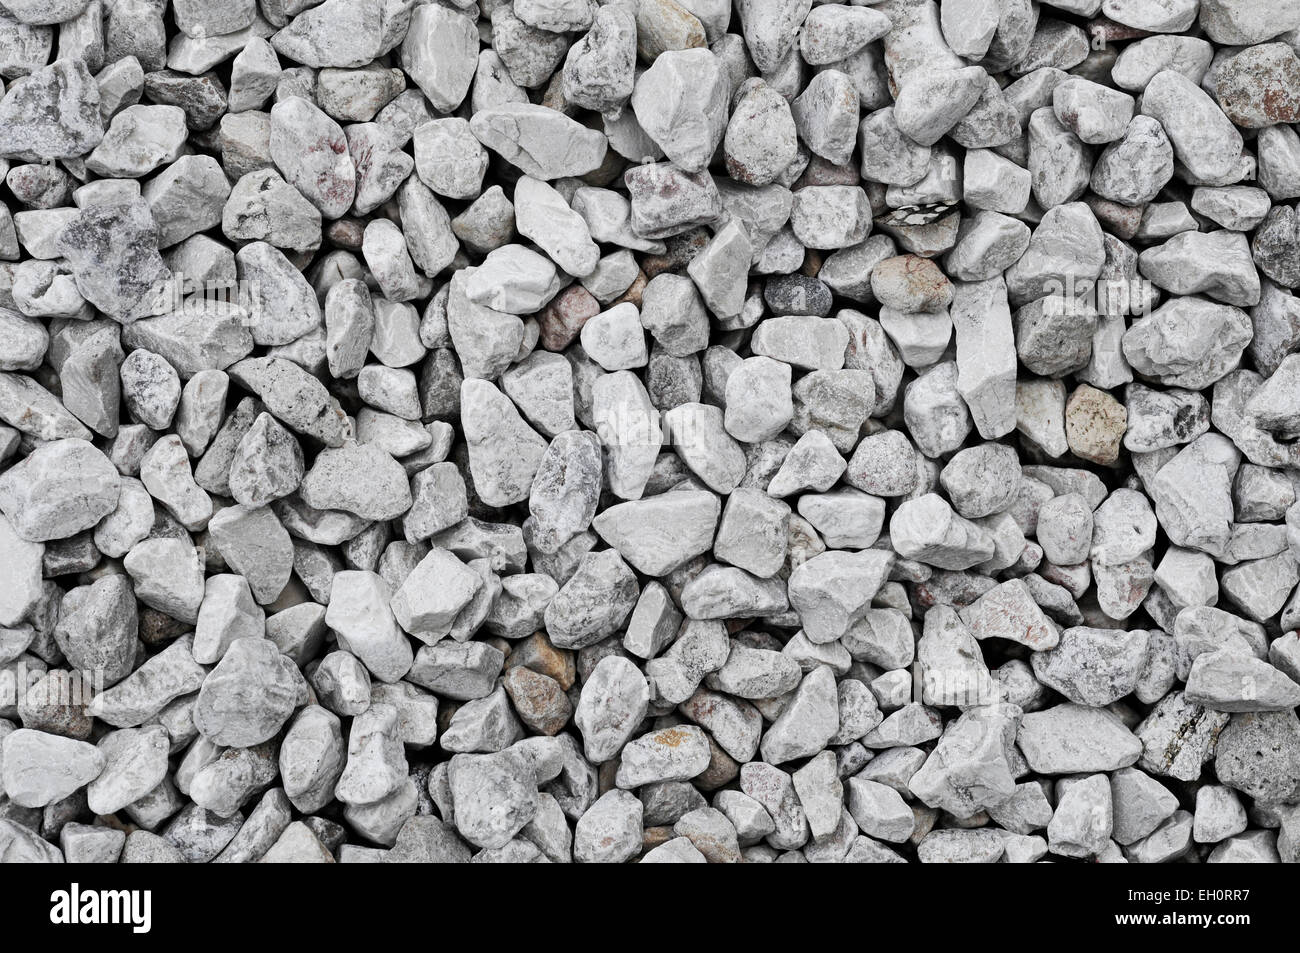 background made of a closeup of a pile of crushed stone - Stock Image